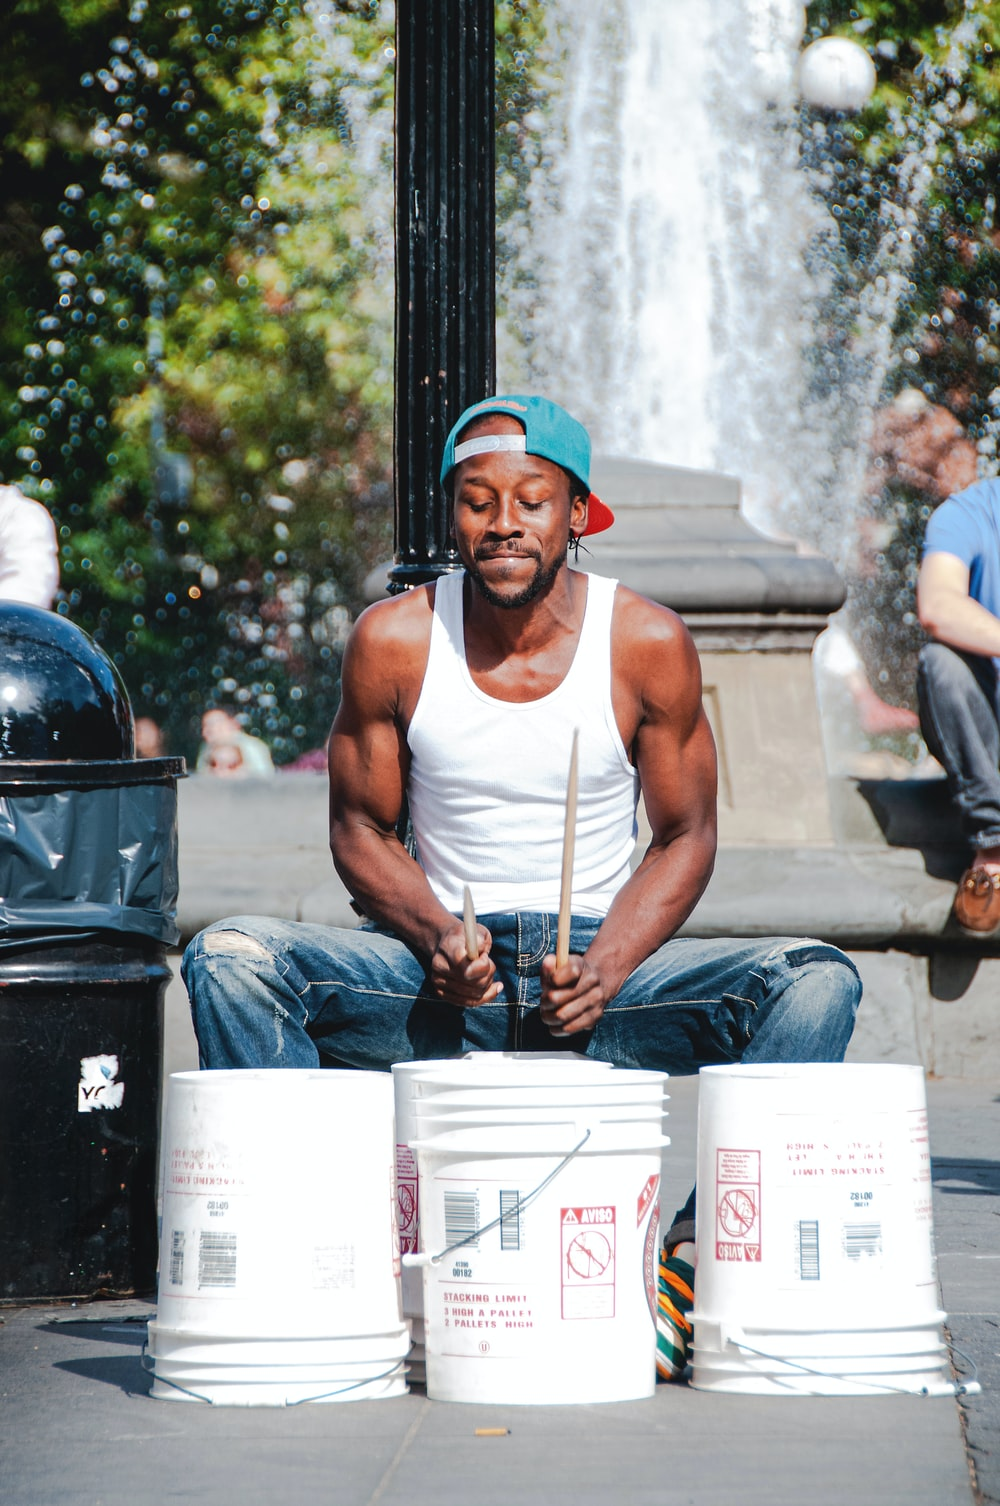 man in white tank top playing with three white plastic buckets